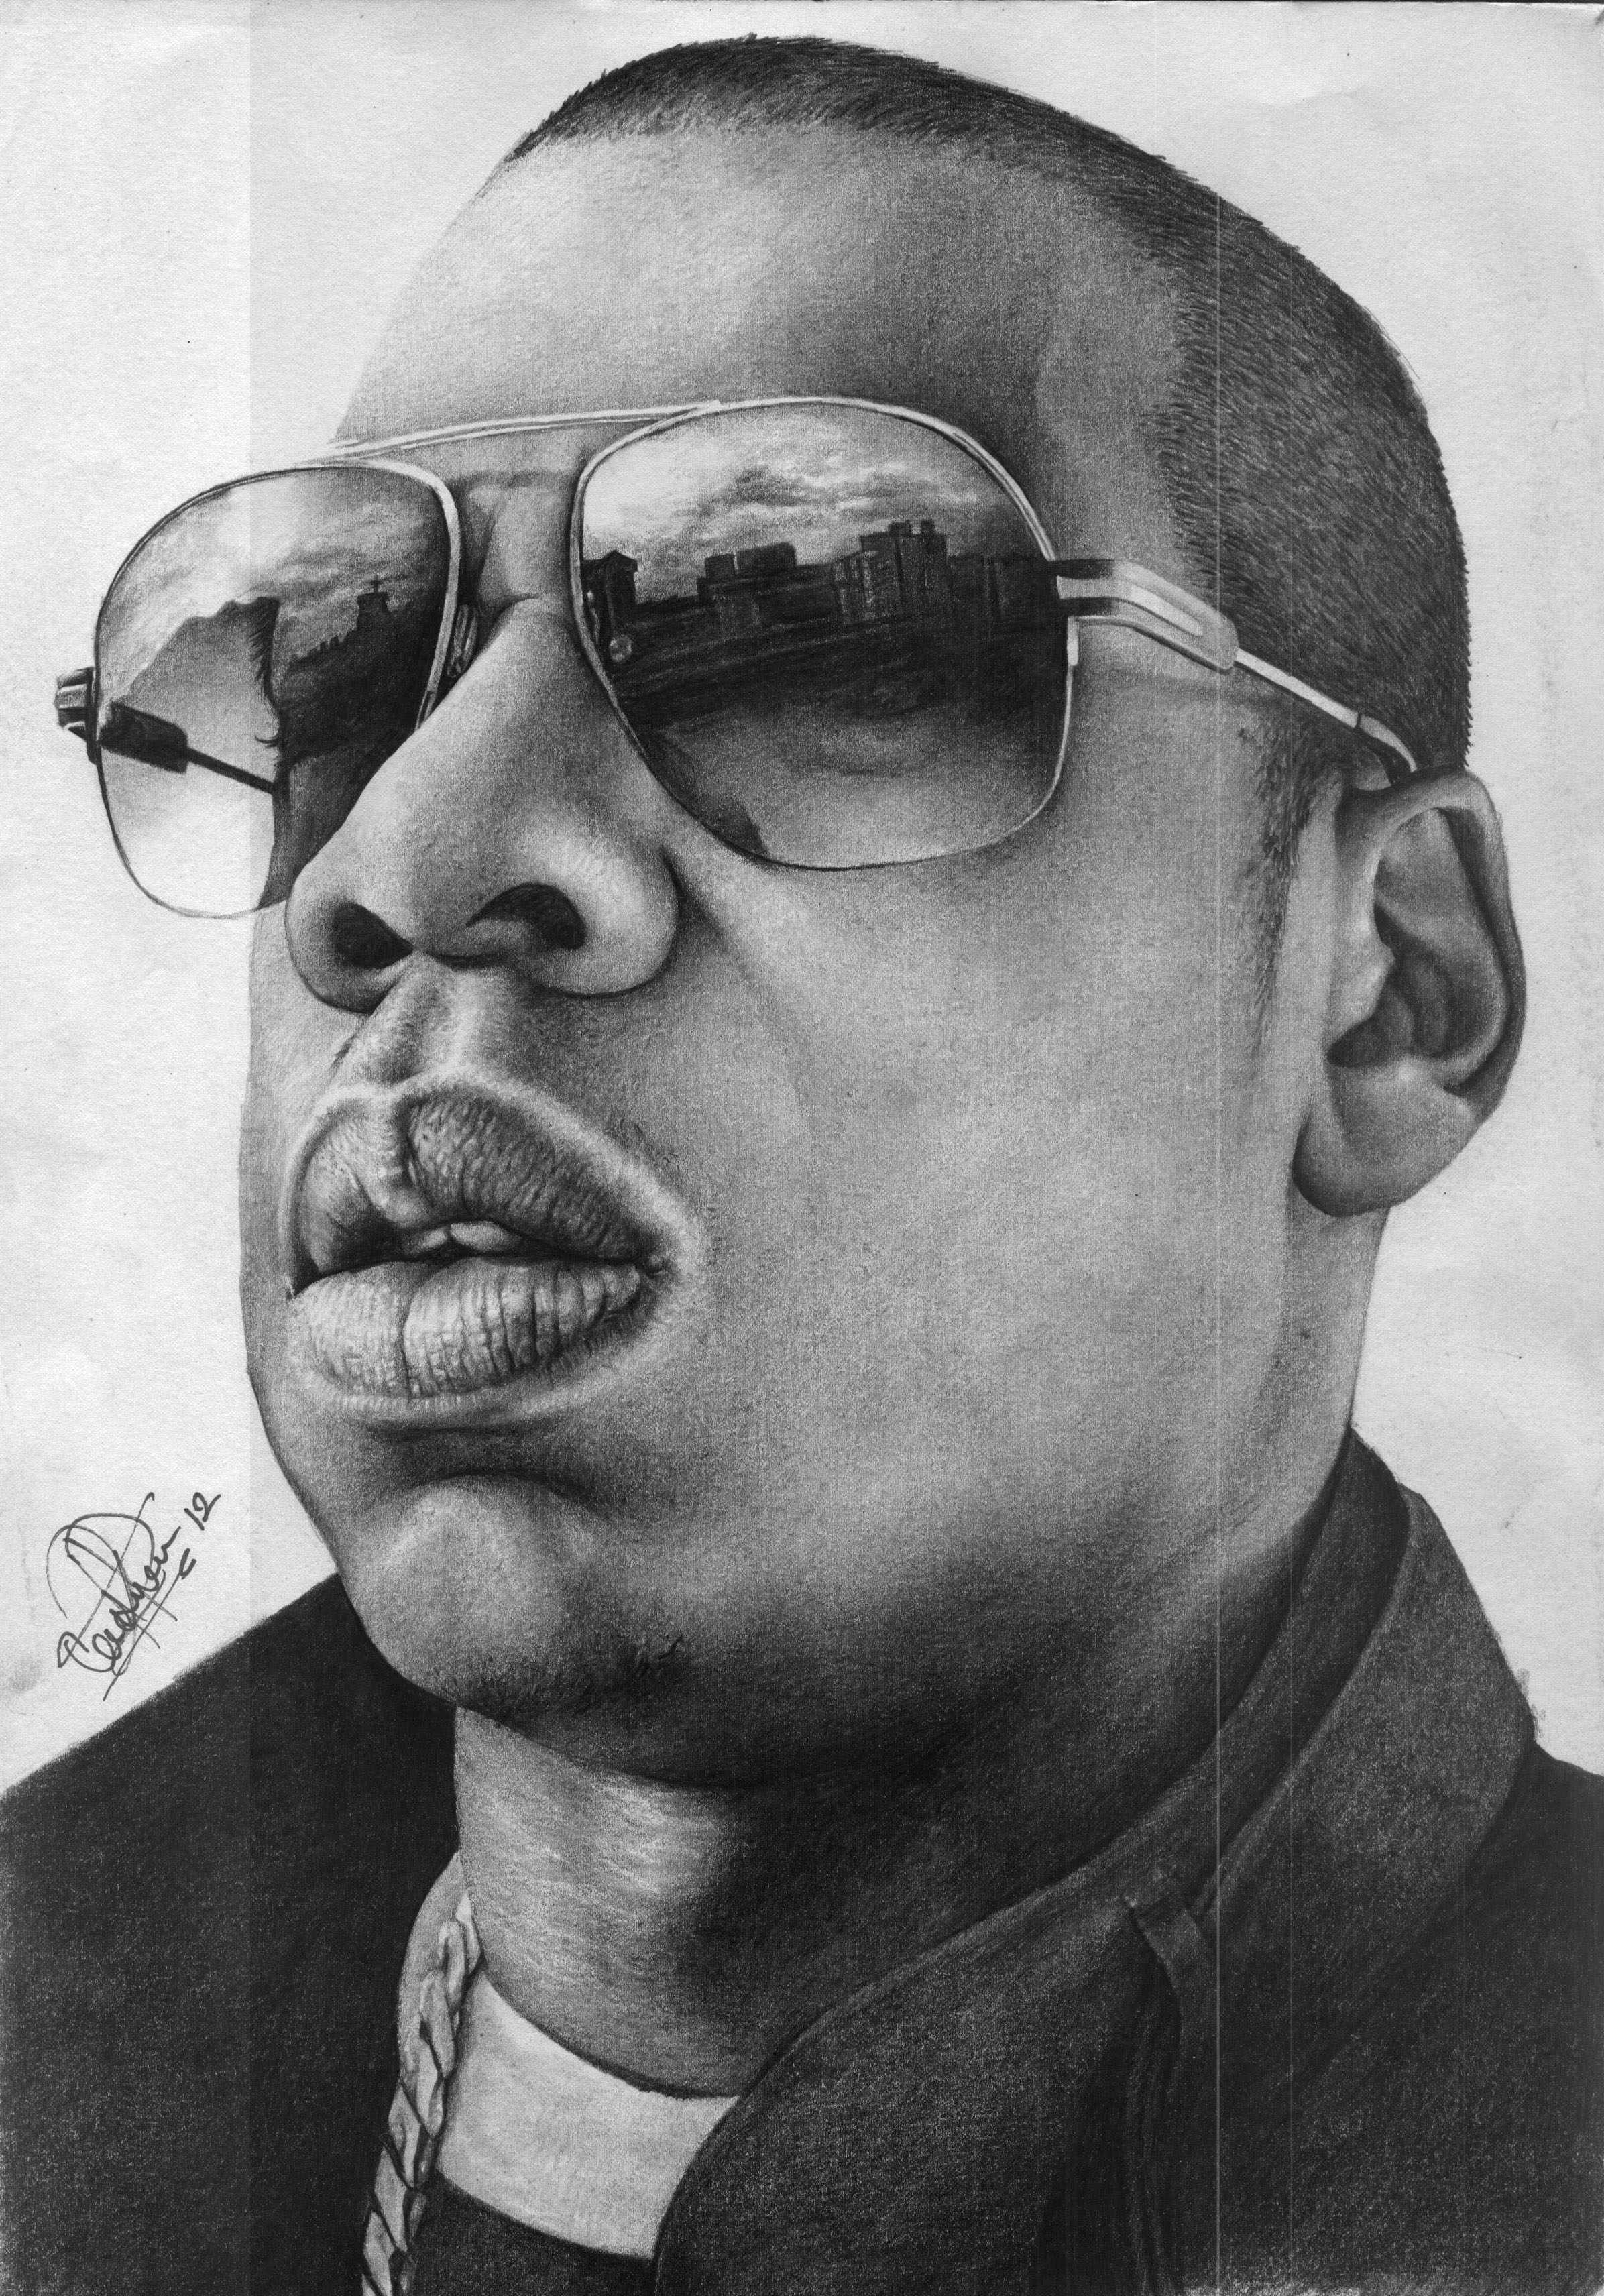 pencil drawings on behance